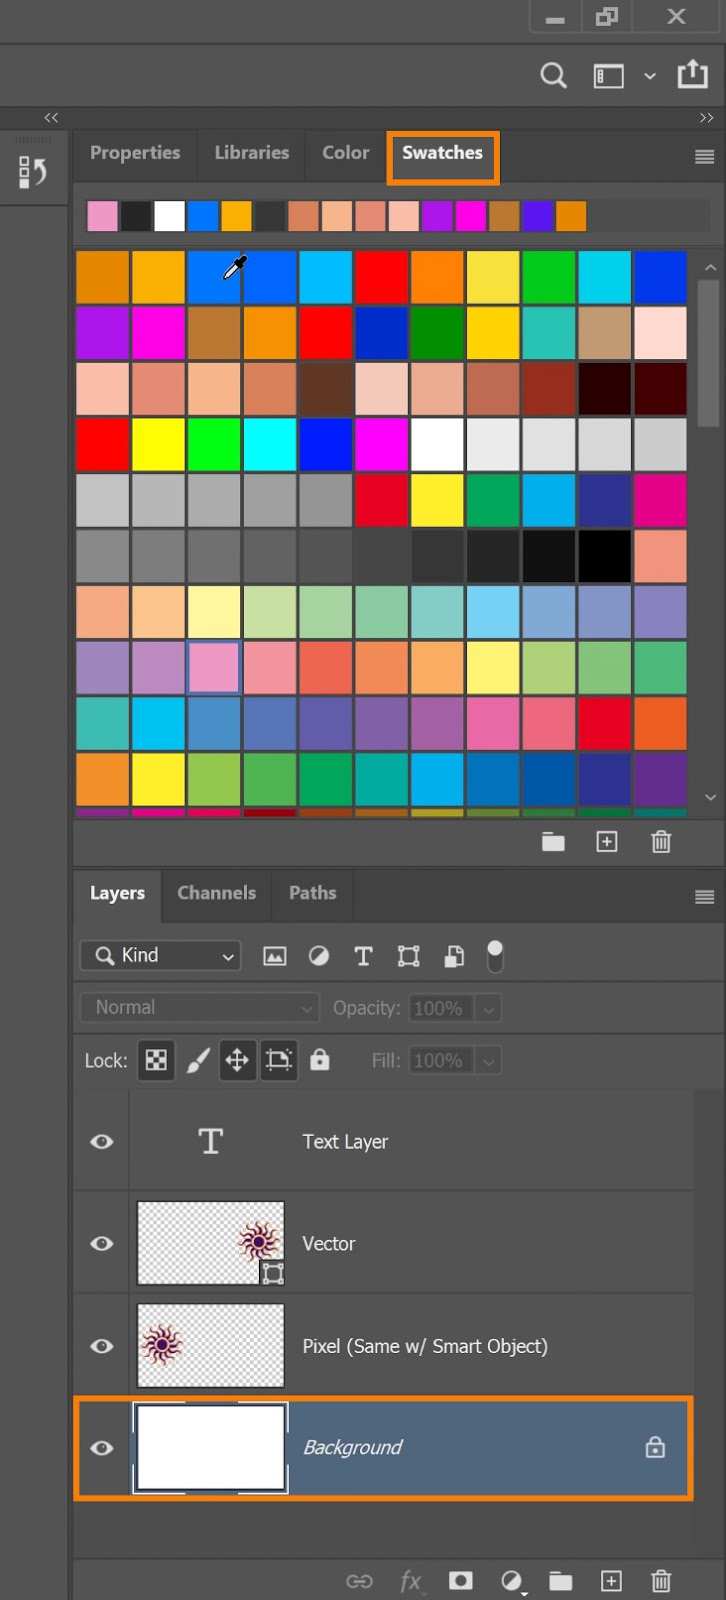 click-and-drag on a color swatch and drop it on the Background layer